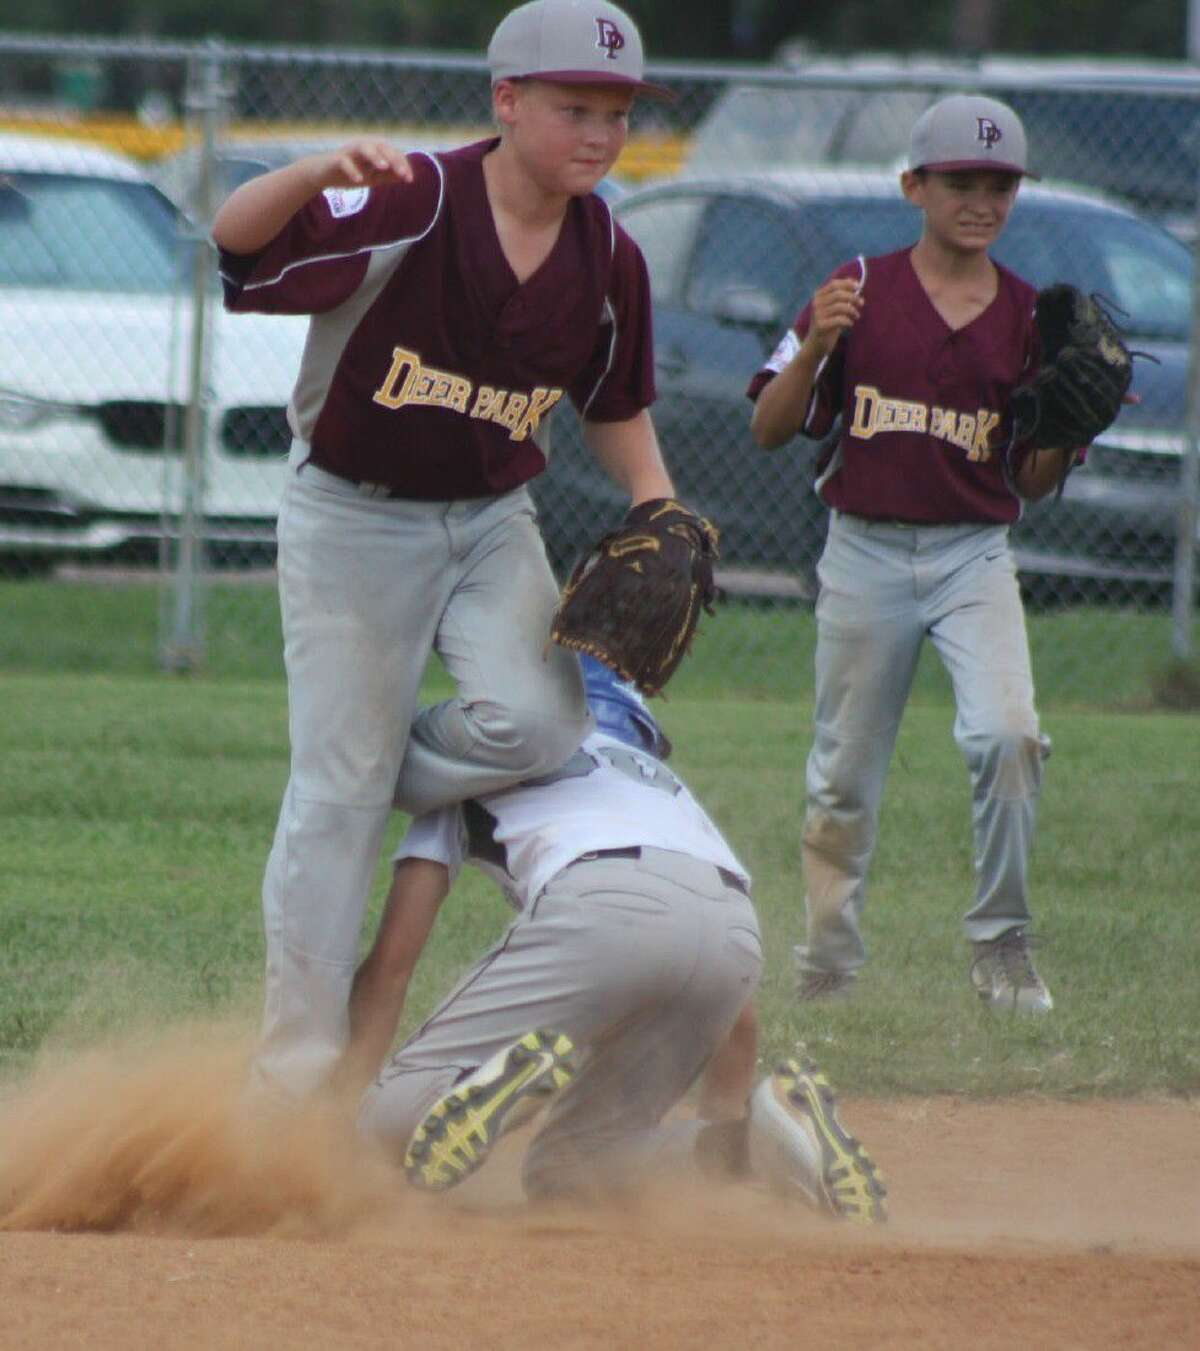 A Pasadena runner dives back to second base as Deer Park shortstop HaydenTronson tries to keep his balance during Sunday's first Section championship game at Spiller Field. Looking on is second baseman Anthony Gabriel.